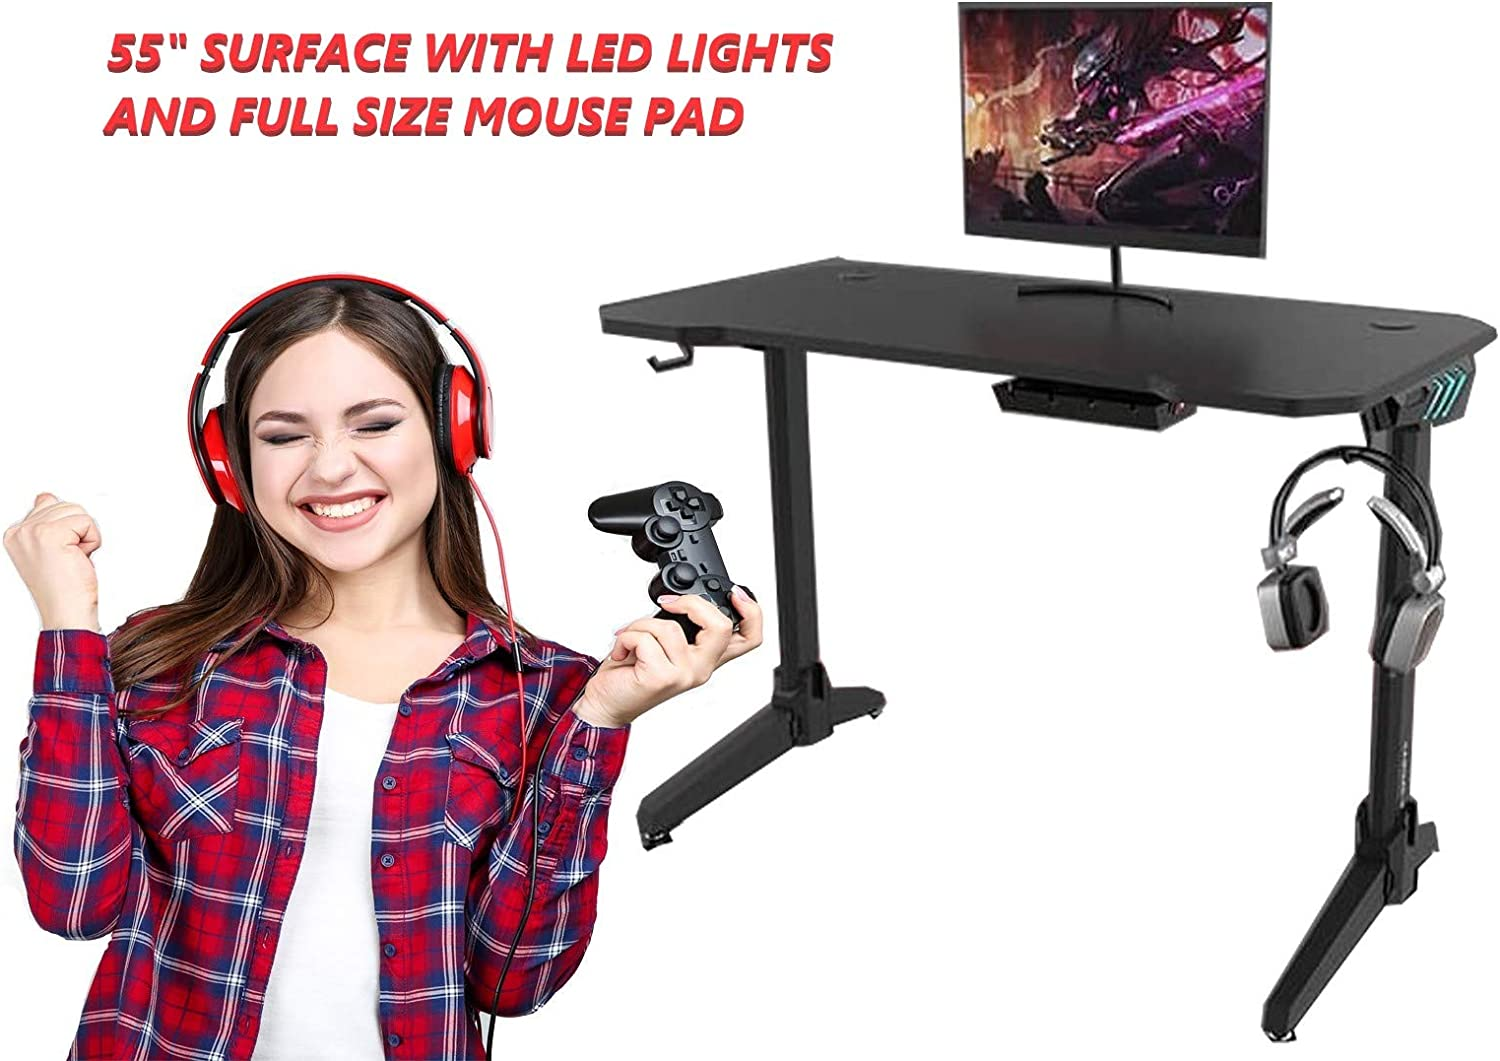 "OCD By Design Gaming Computer Desk or Computer Gaming Desk 55"" Wide Large Office Table, Pro PC Video Gamer Desk, Multi Colored LED Lights,Carbon Fiber Surface,Mouse Pad, Headphone, cup holder"